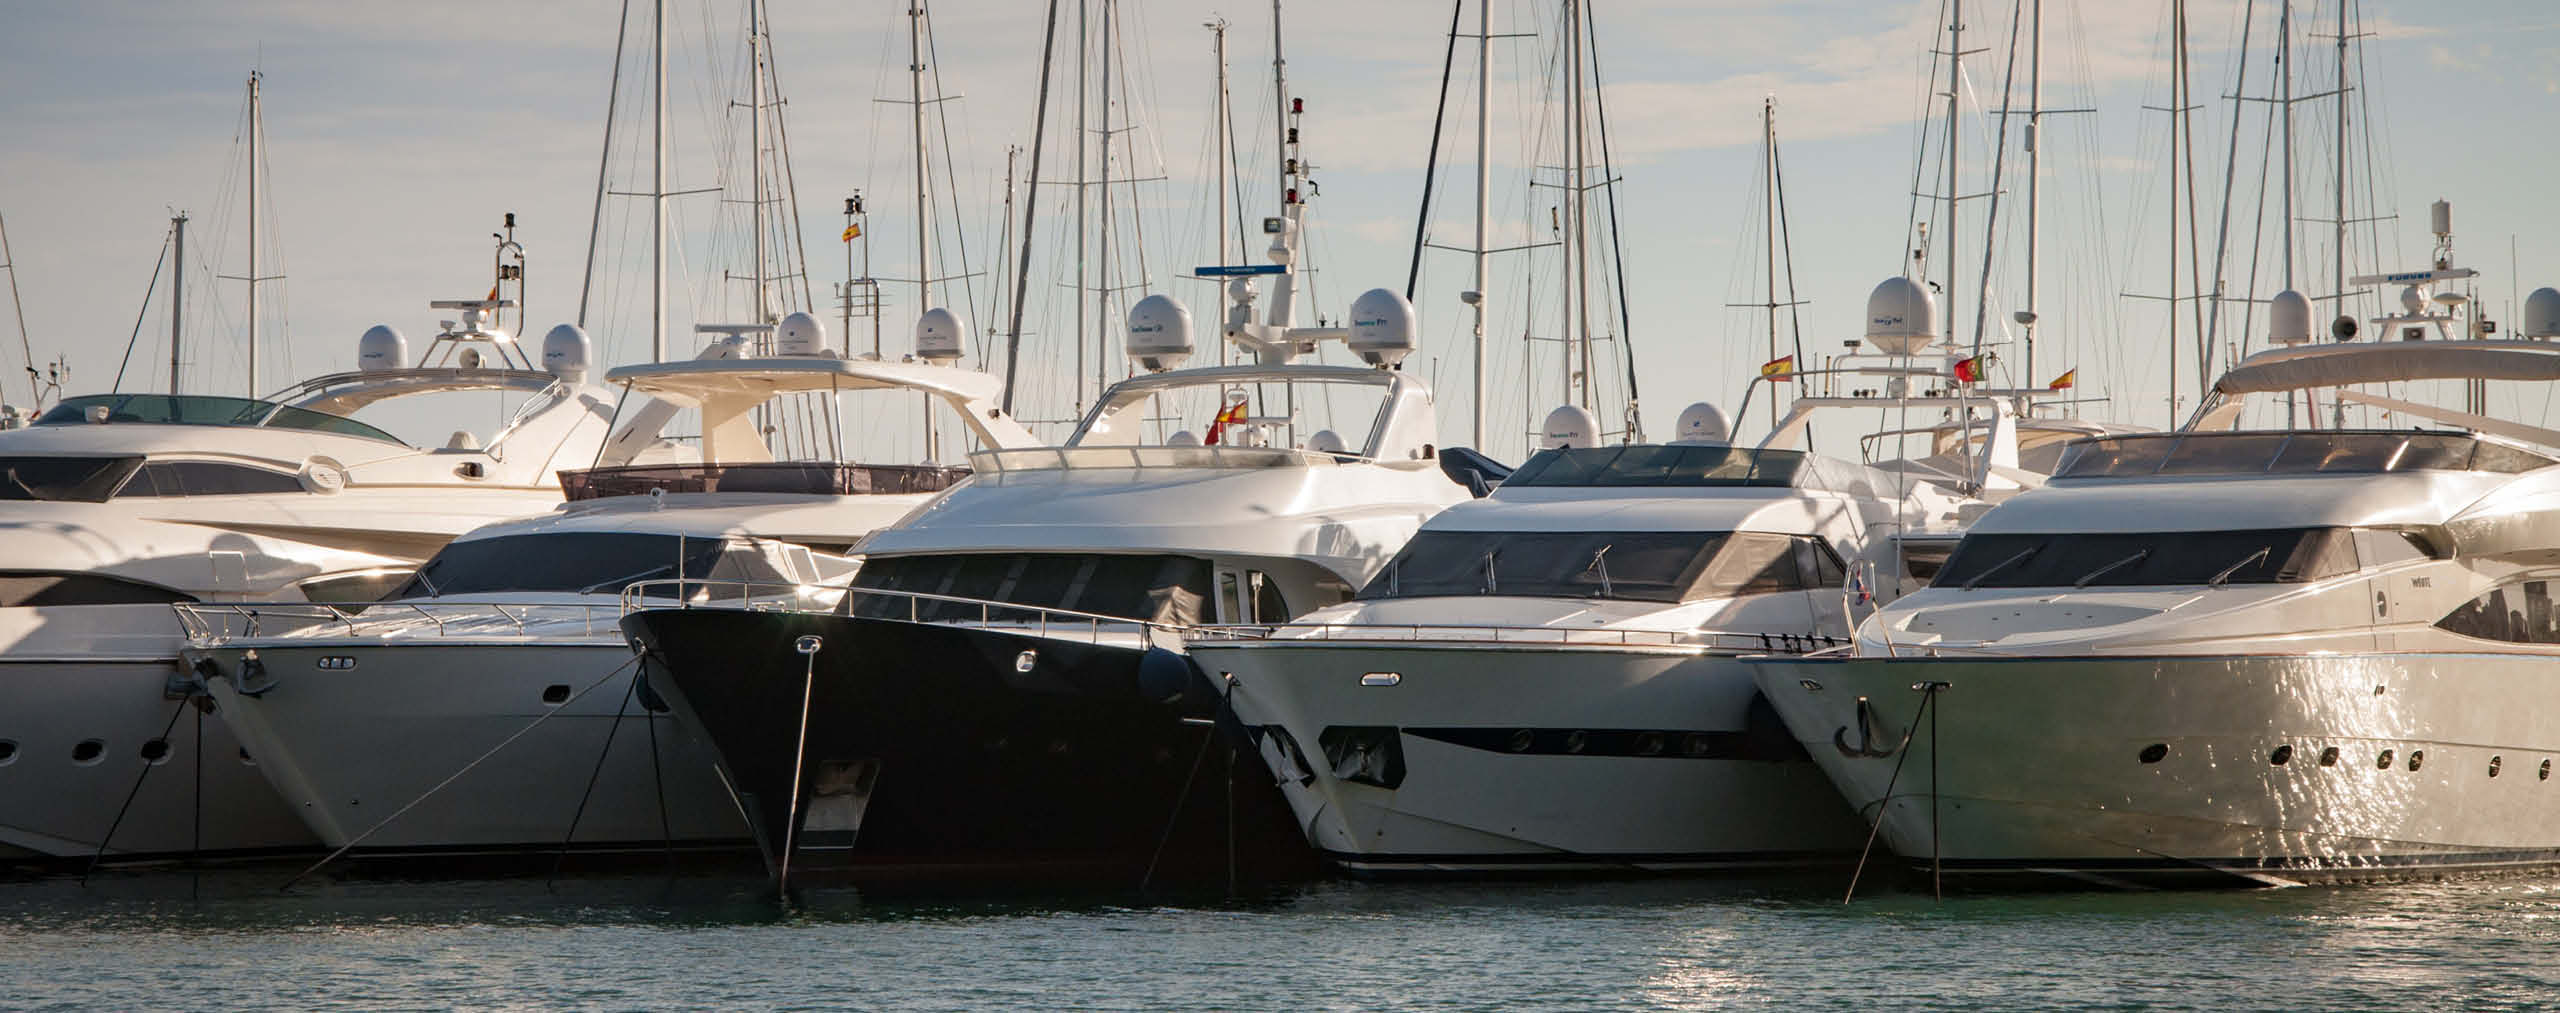 Lots of yachts lined up